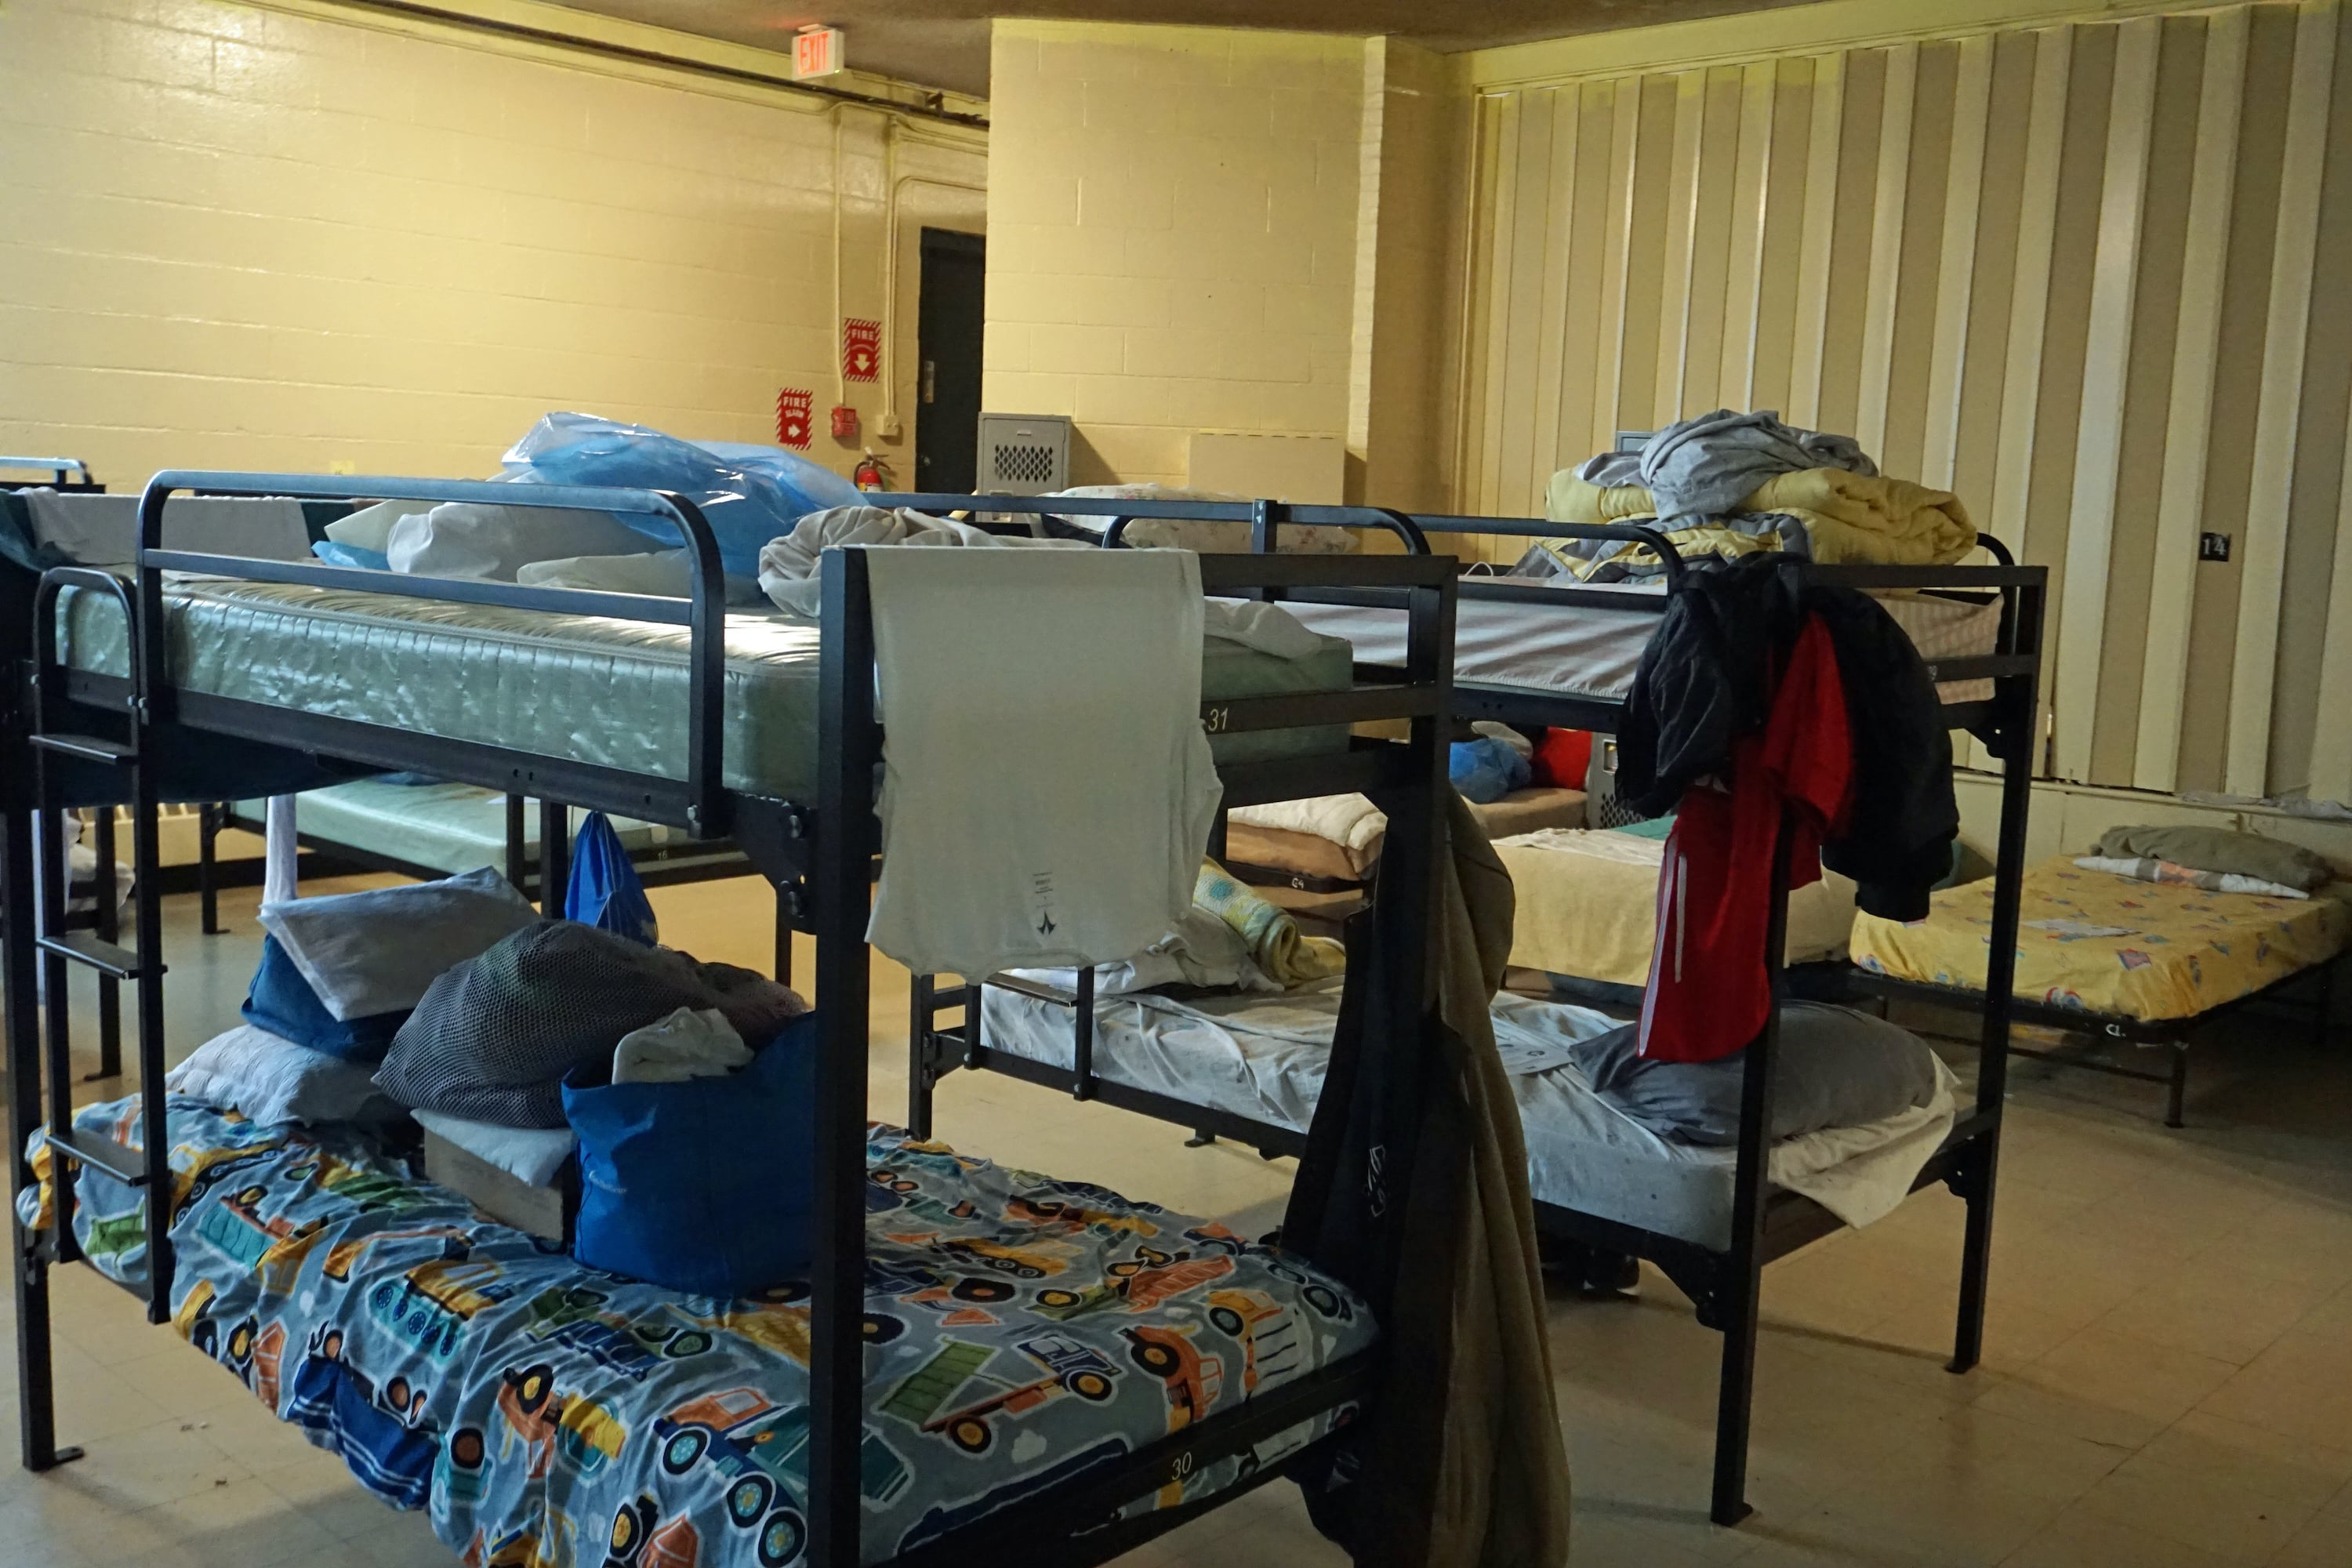 Homeless shelters are especially vulnerable to COVID-19 spread, deaths